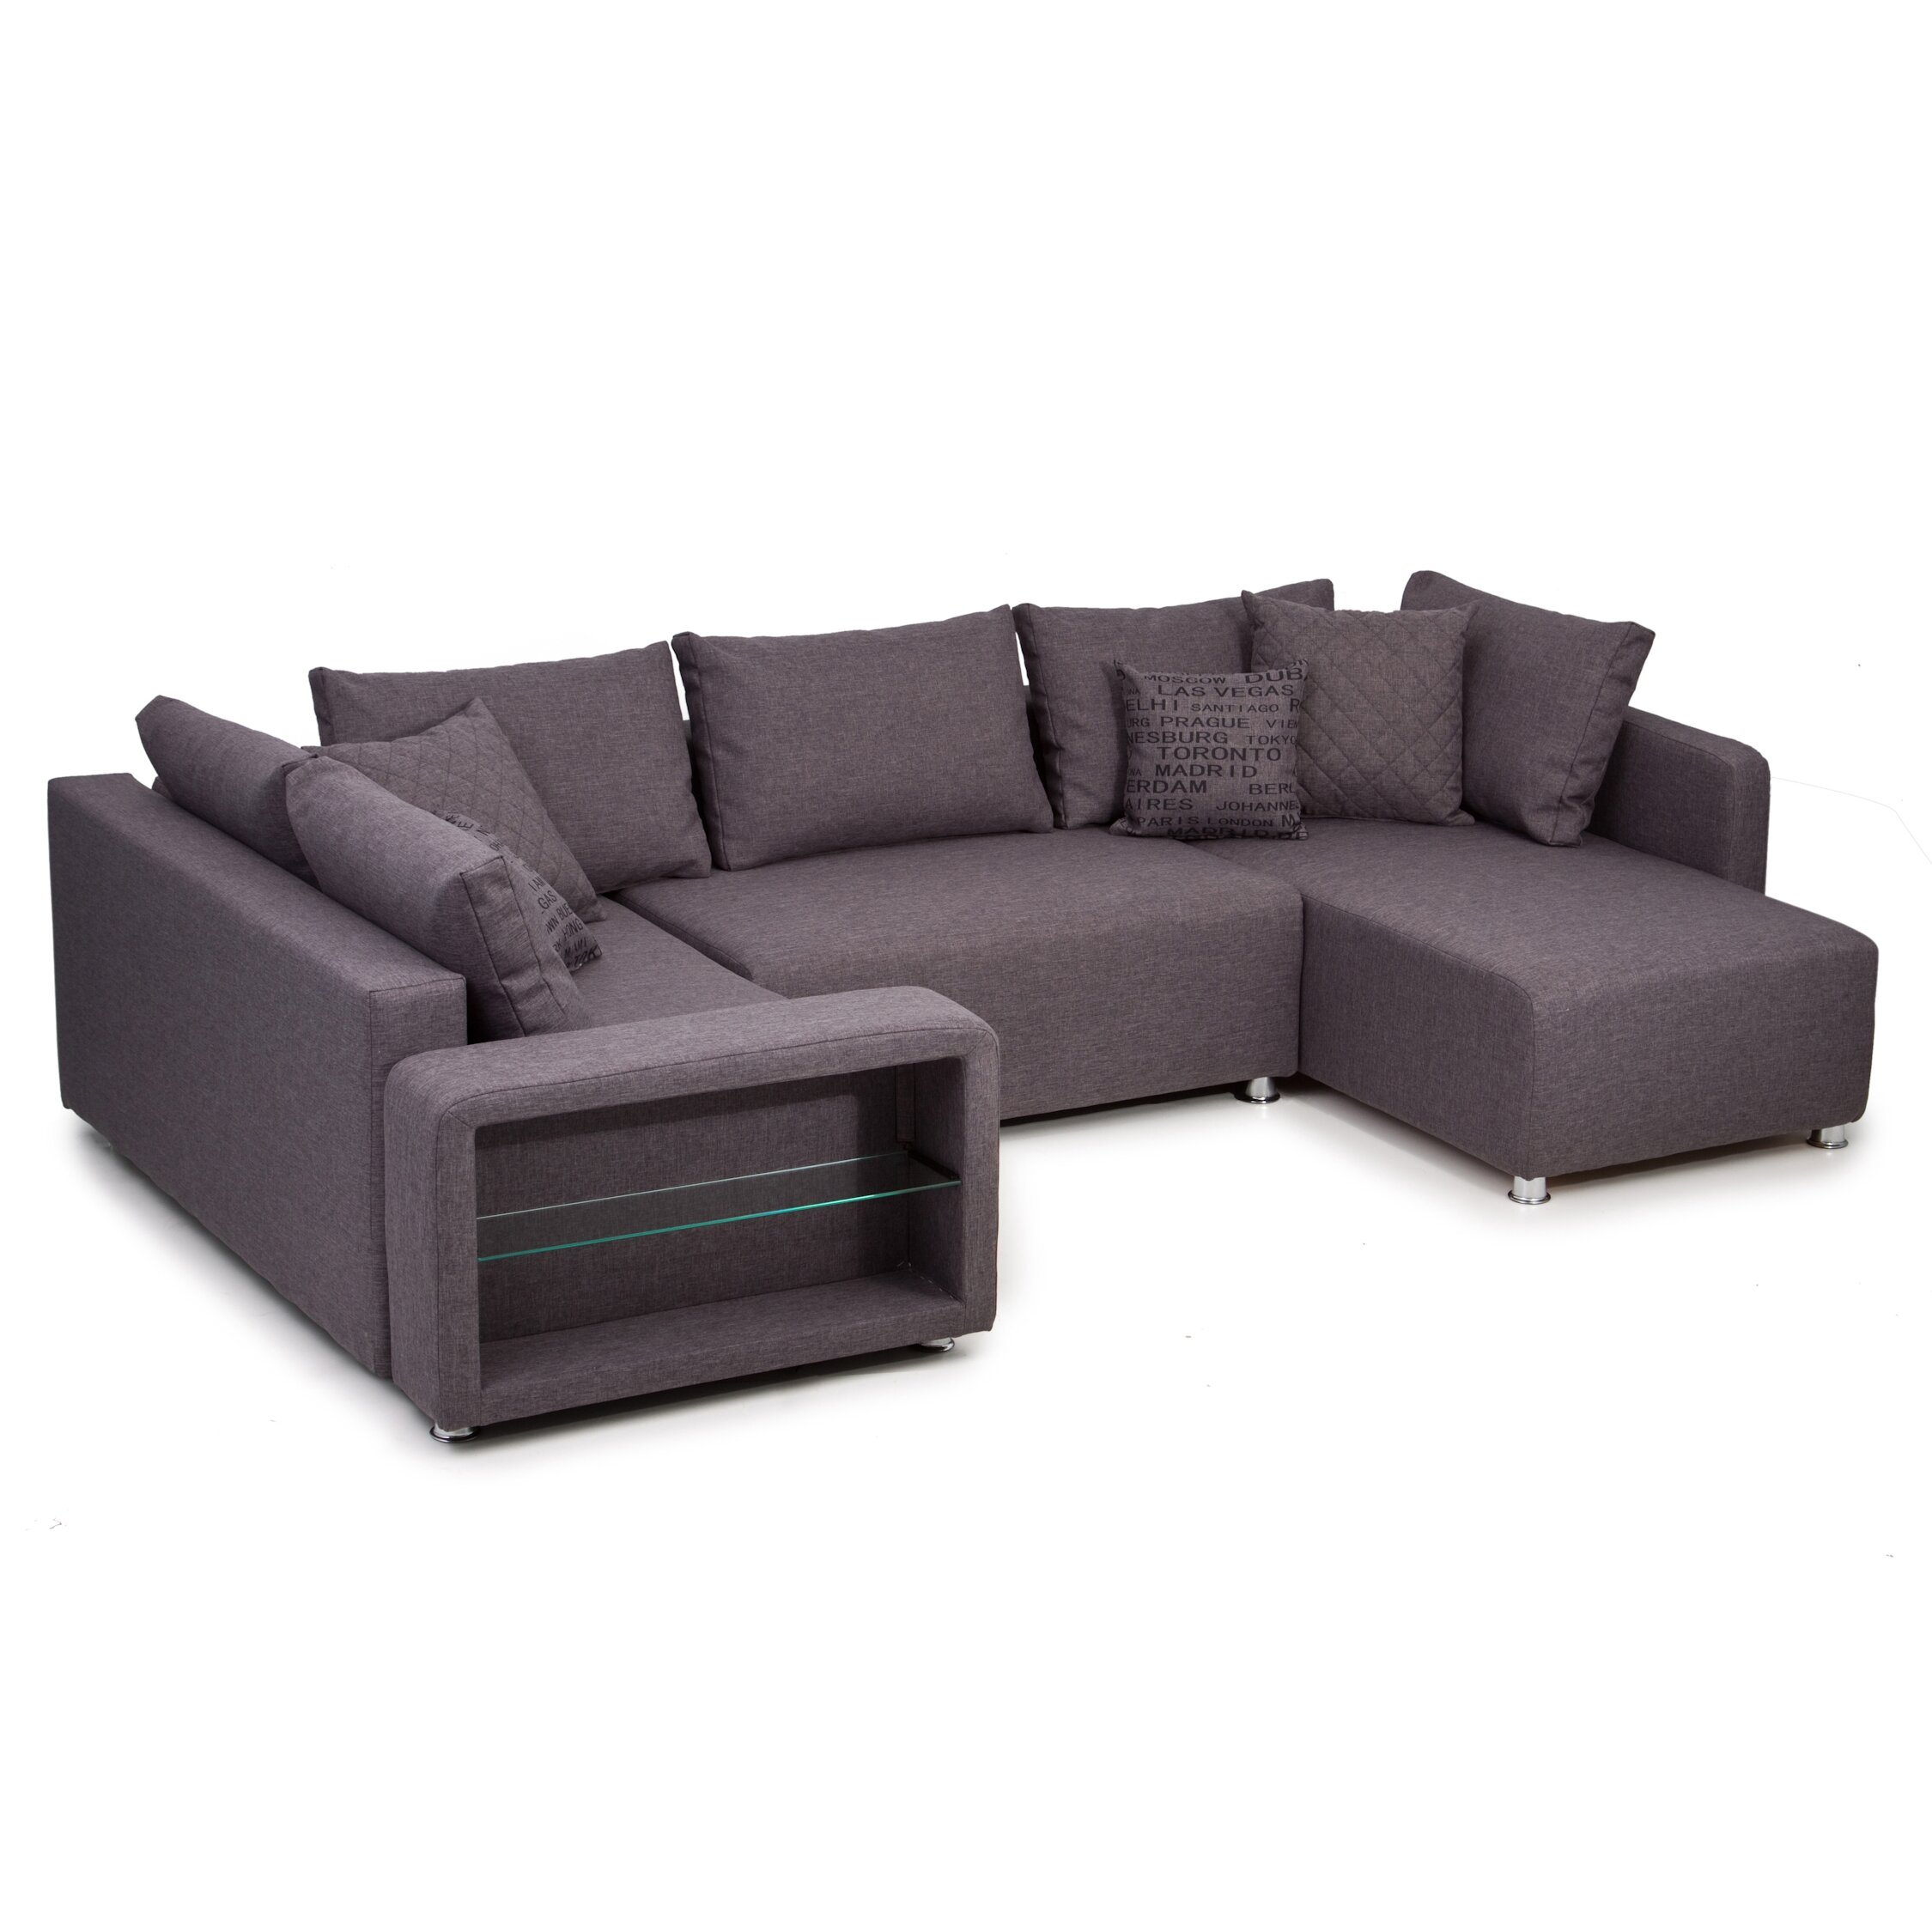 home haus sofa barmedman mit strukturstoffbezug und led beleuchtung. Black Bedroom Furniture Sets. Home Design Ideas